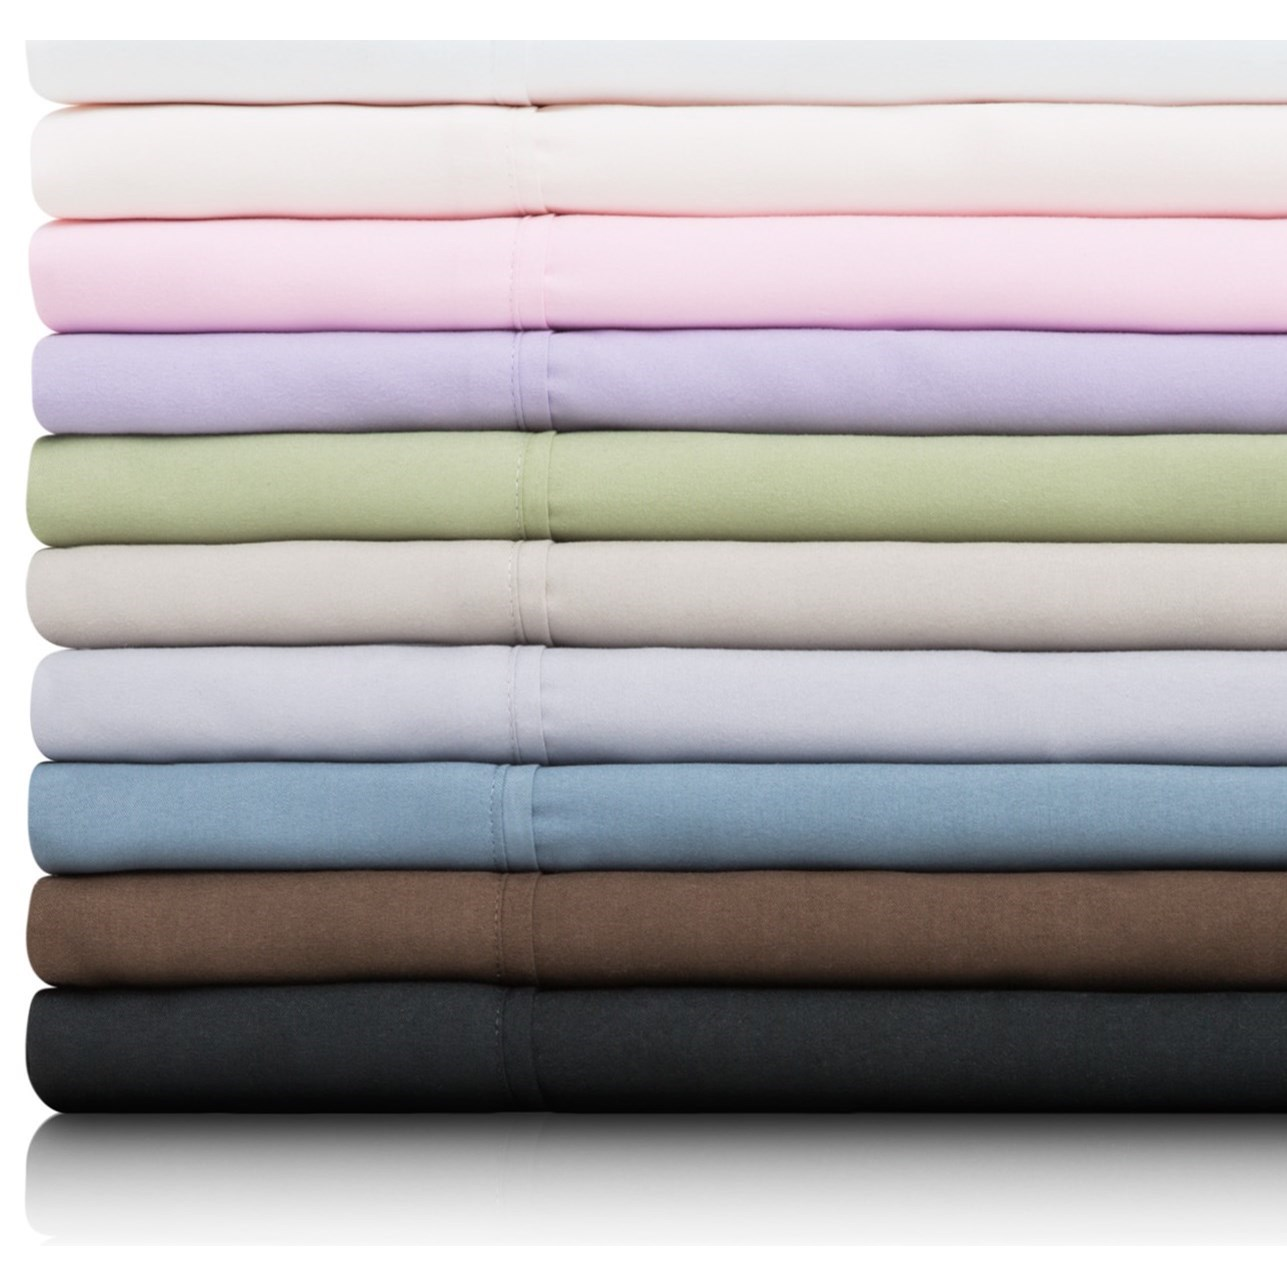 Malouf Brushed Microfiber Queen Woven™ Brushed Microfiber Sheet Set - Item Number: MA90QQPAMS